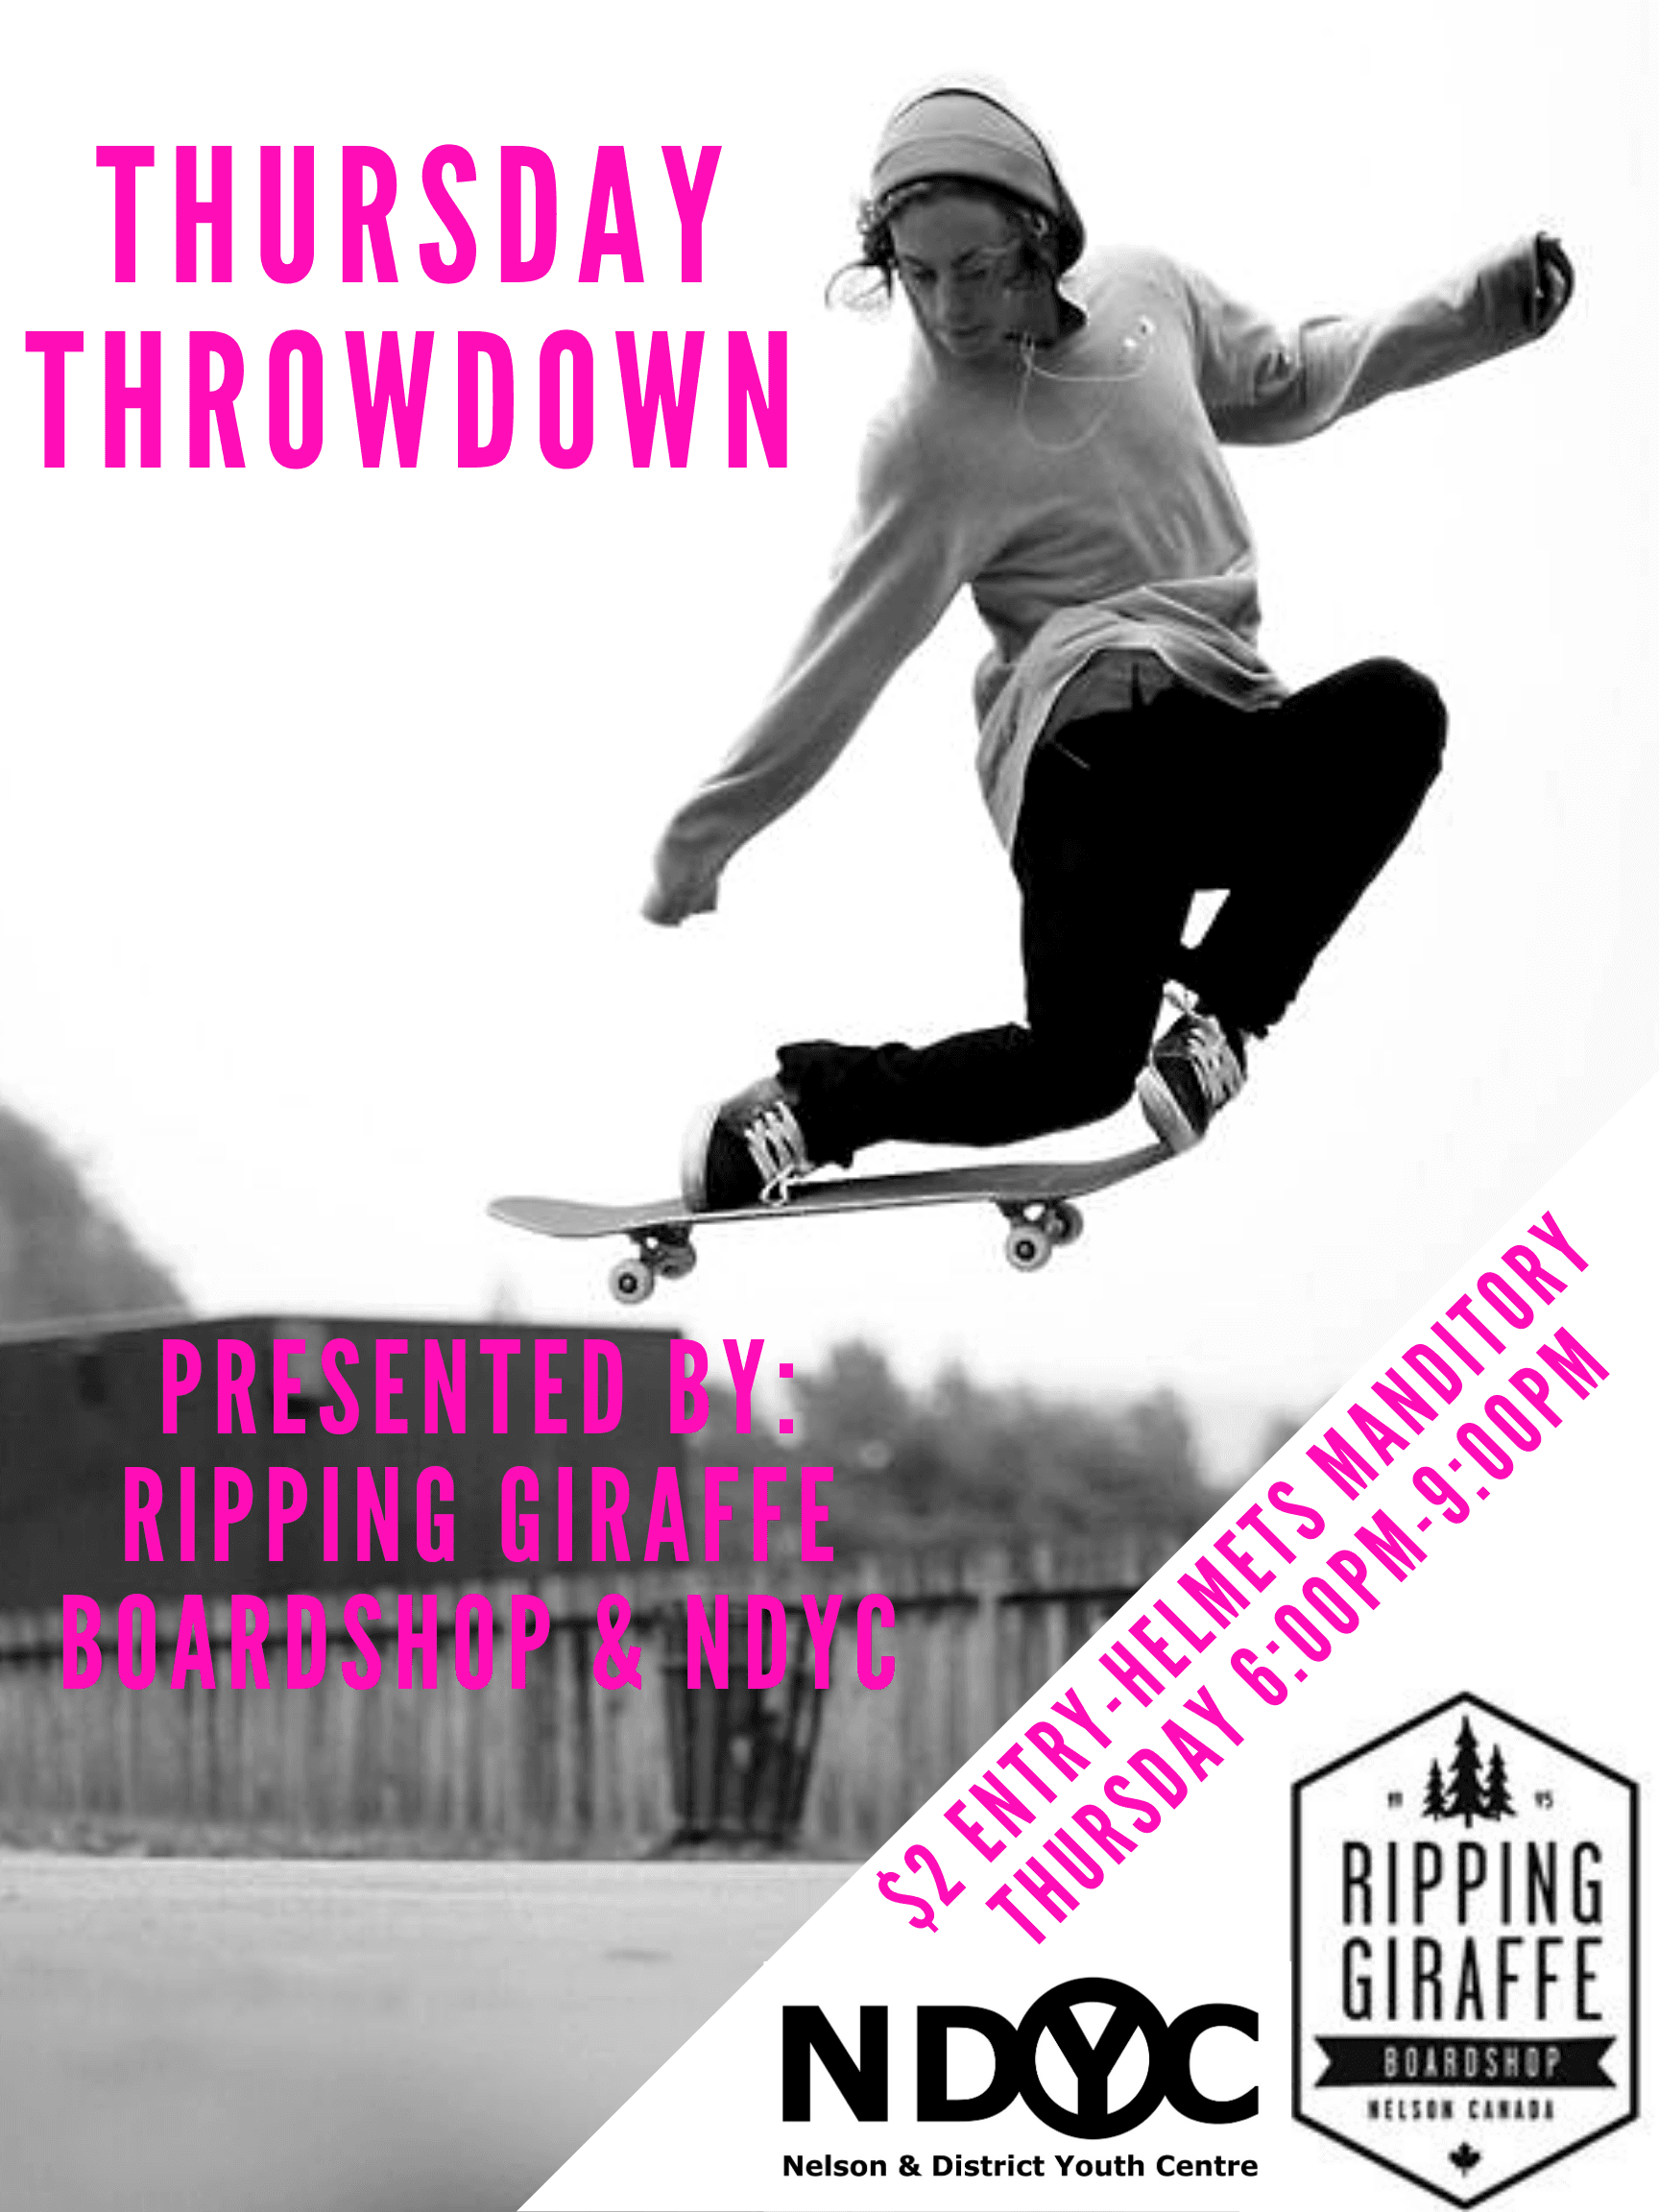 Copy of Thursday Throwdown